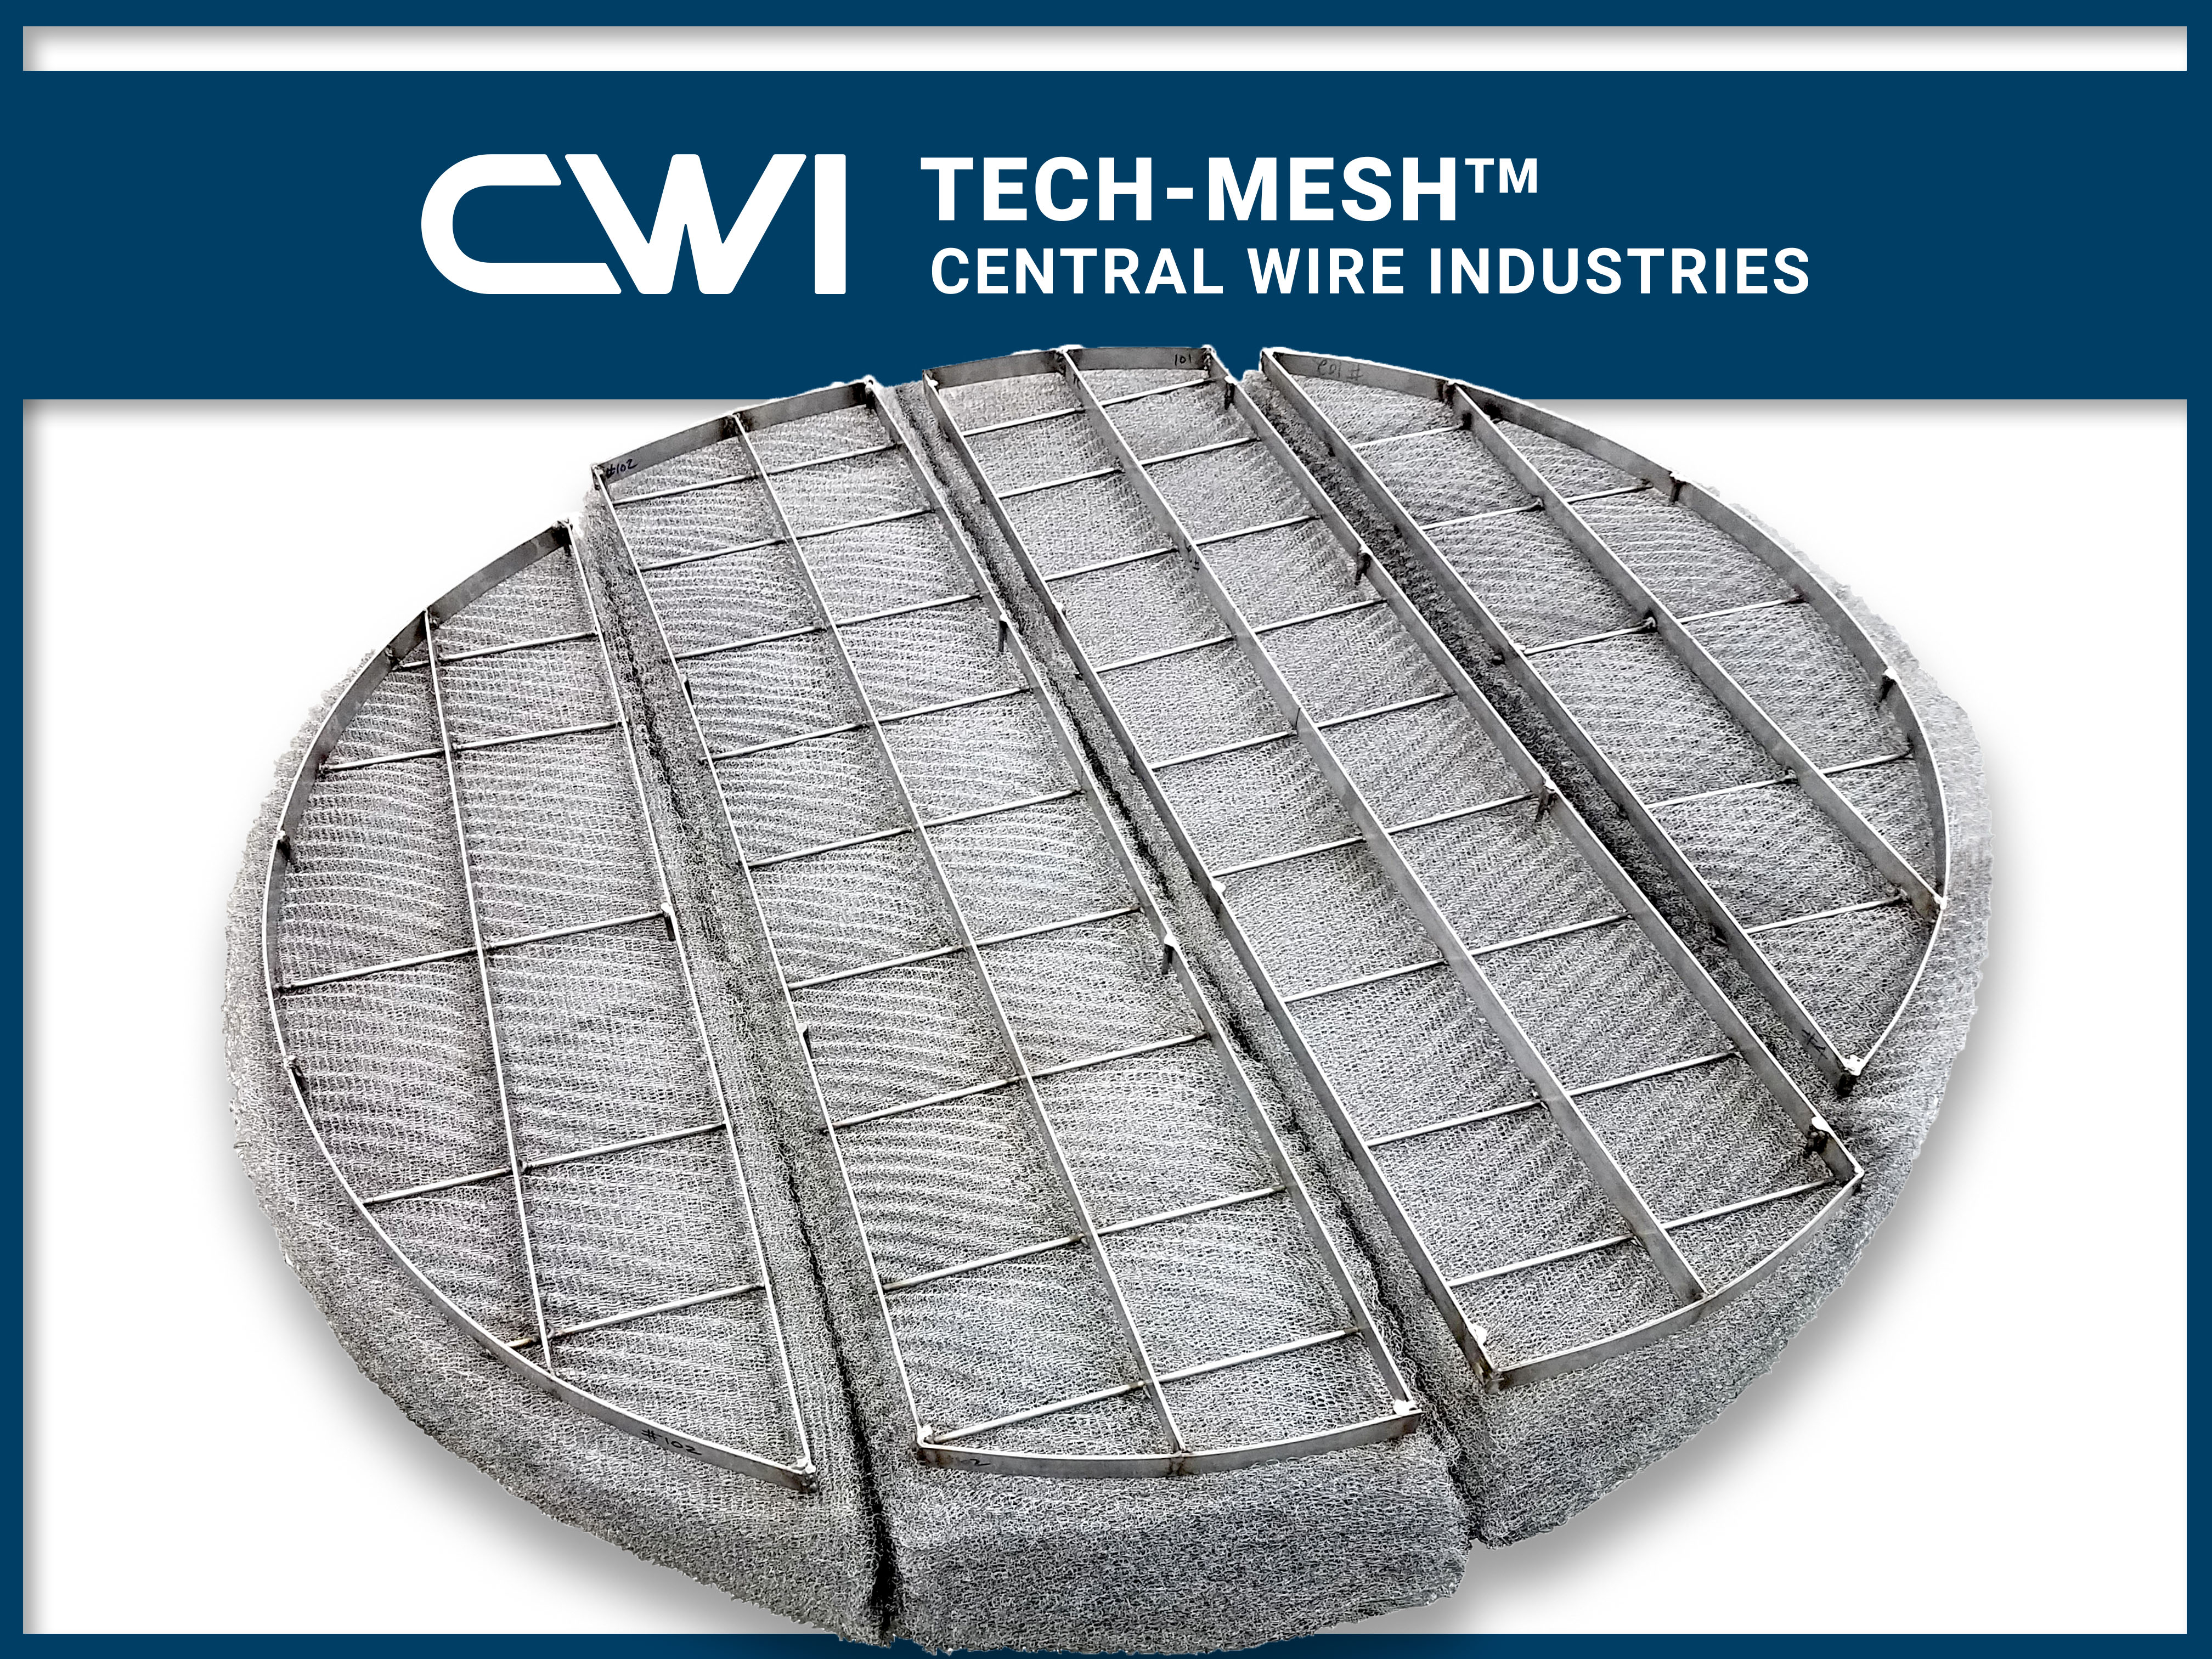 Tech-Mesh: CWI Offers a New High-End Product for all your Mist Elimination Needs